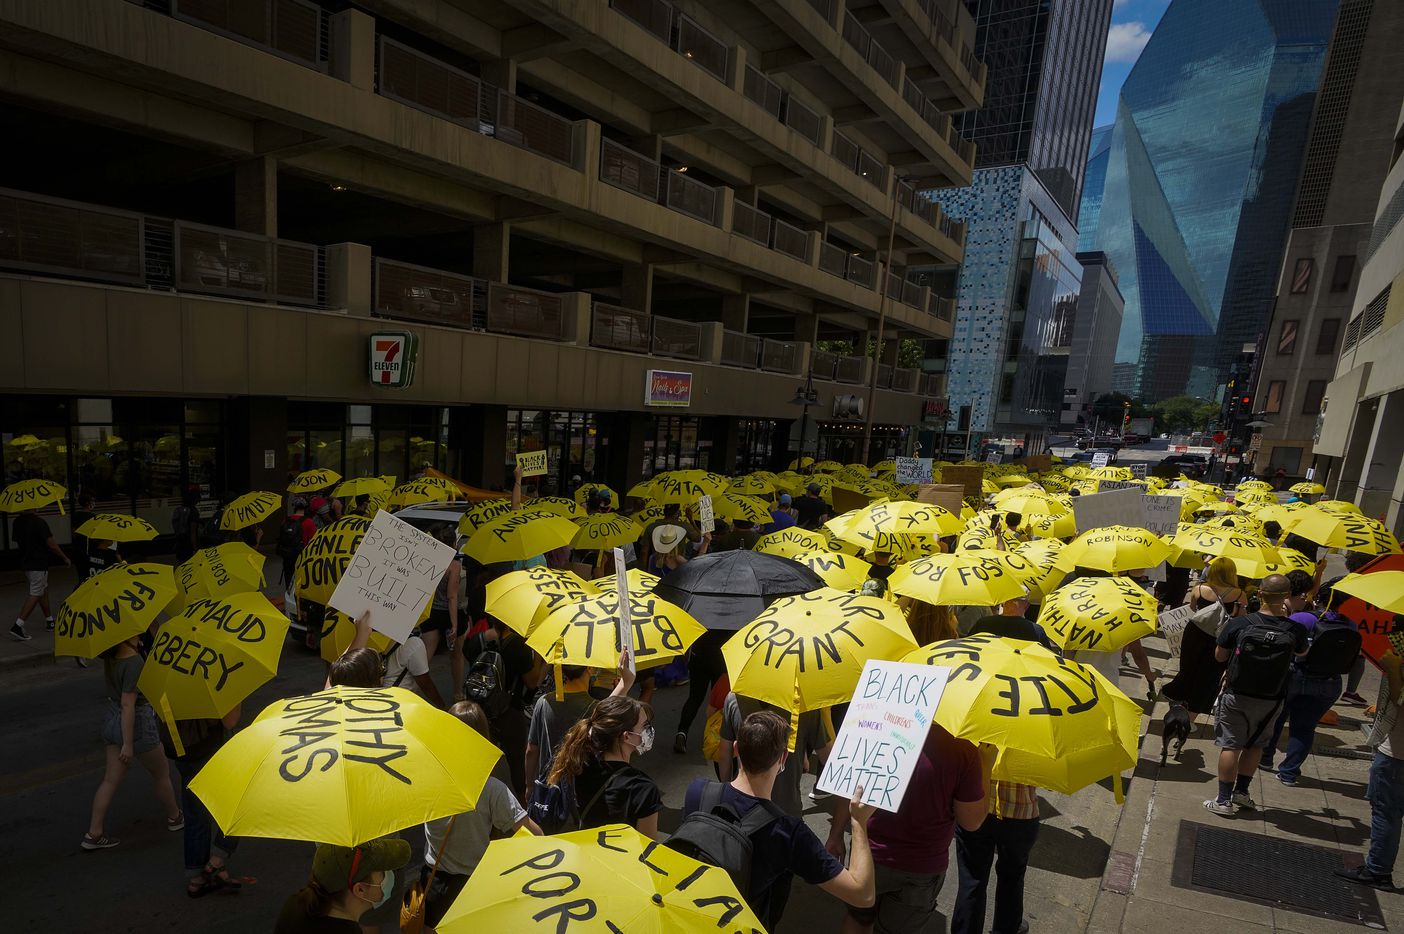 Demonstrators, many carrying umbrellas bearing the names of people who have been killed by police or racial violence, march through the streets of downtown Dallas following a rally commemorating Juneteenth at Dallas City Hall on Friday, June 19, 2020.